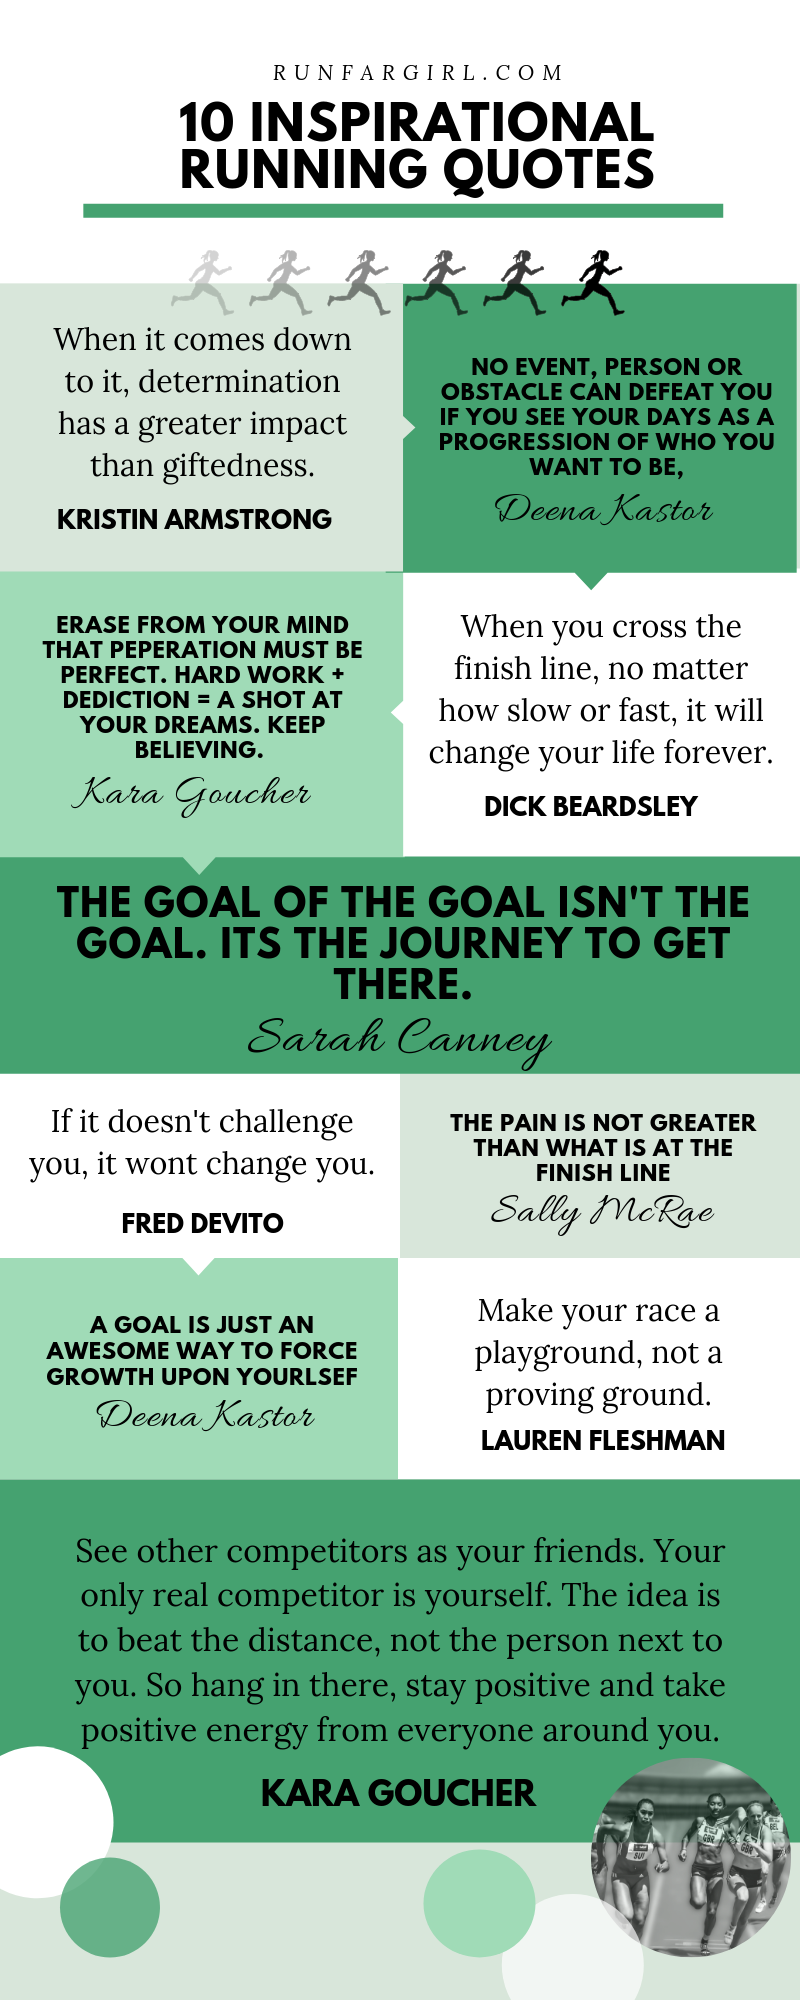 Inspiring Running Quotes.png